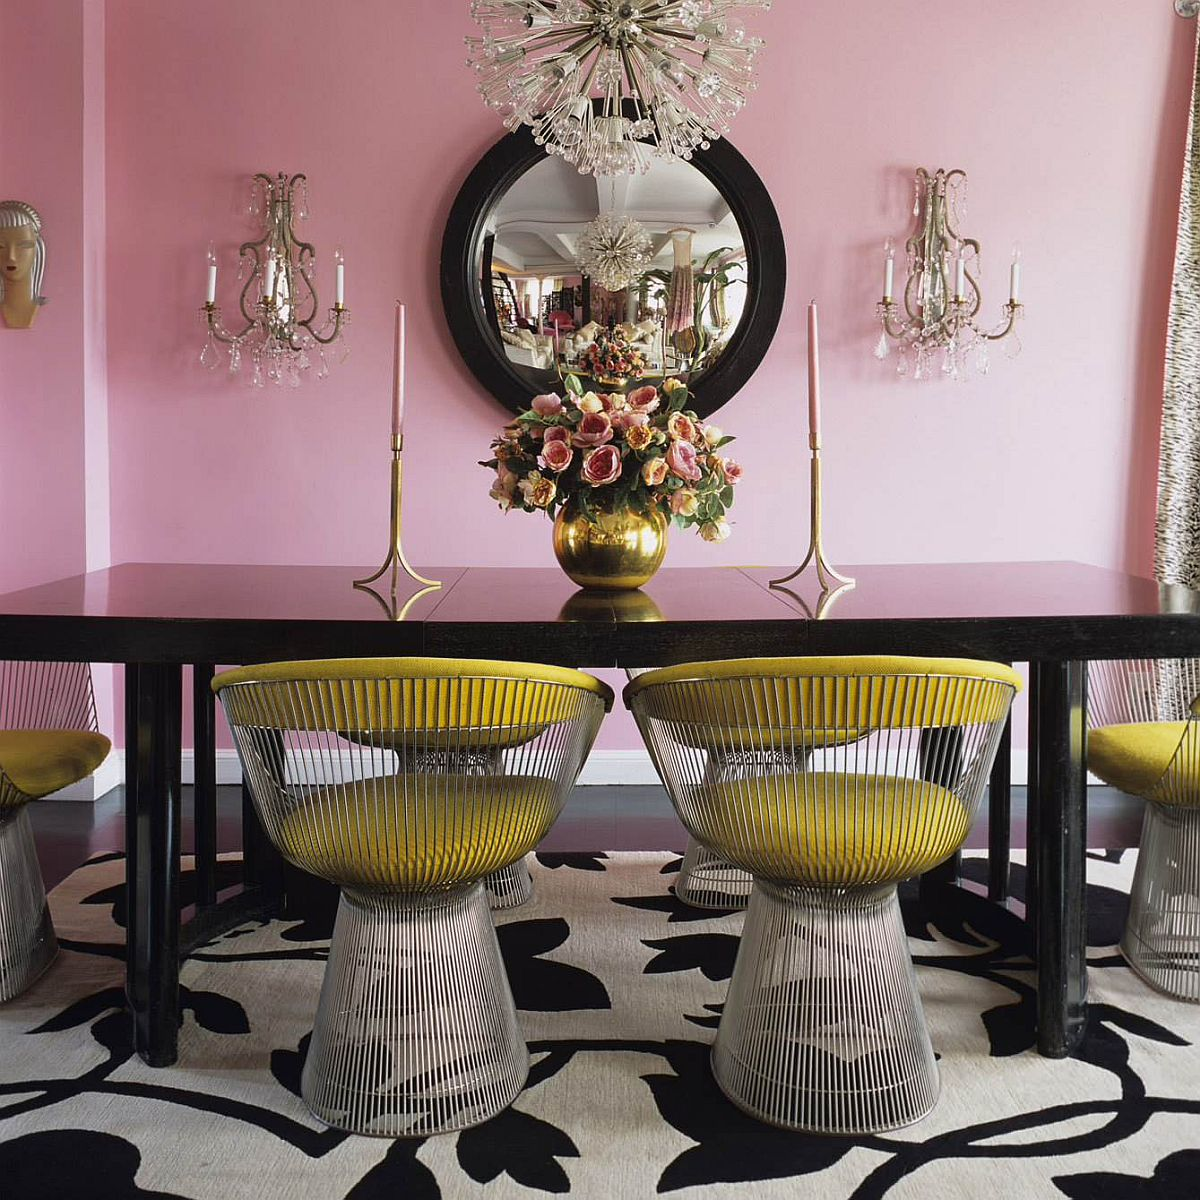 Iconic Platner Chairs bring contrast to the fab dining room in pink